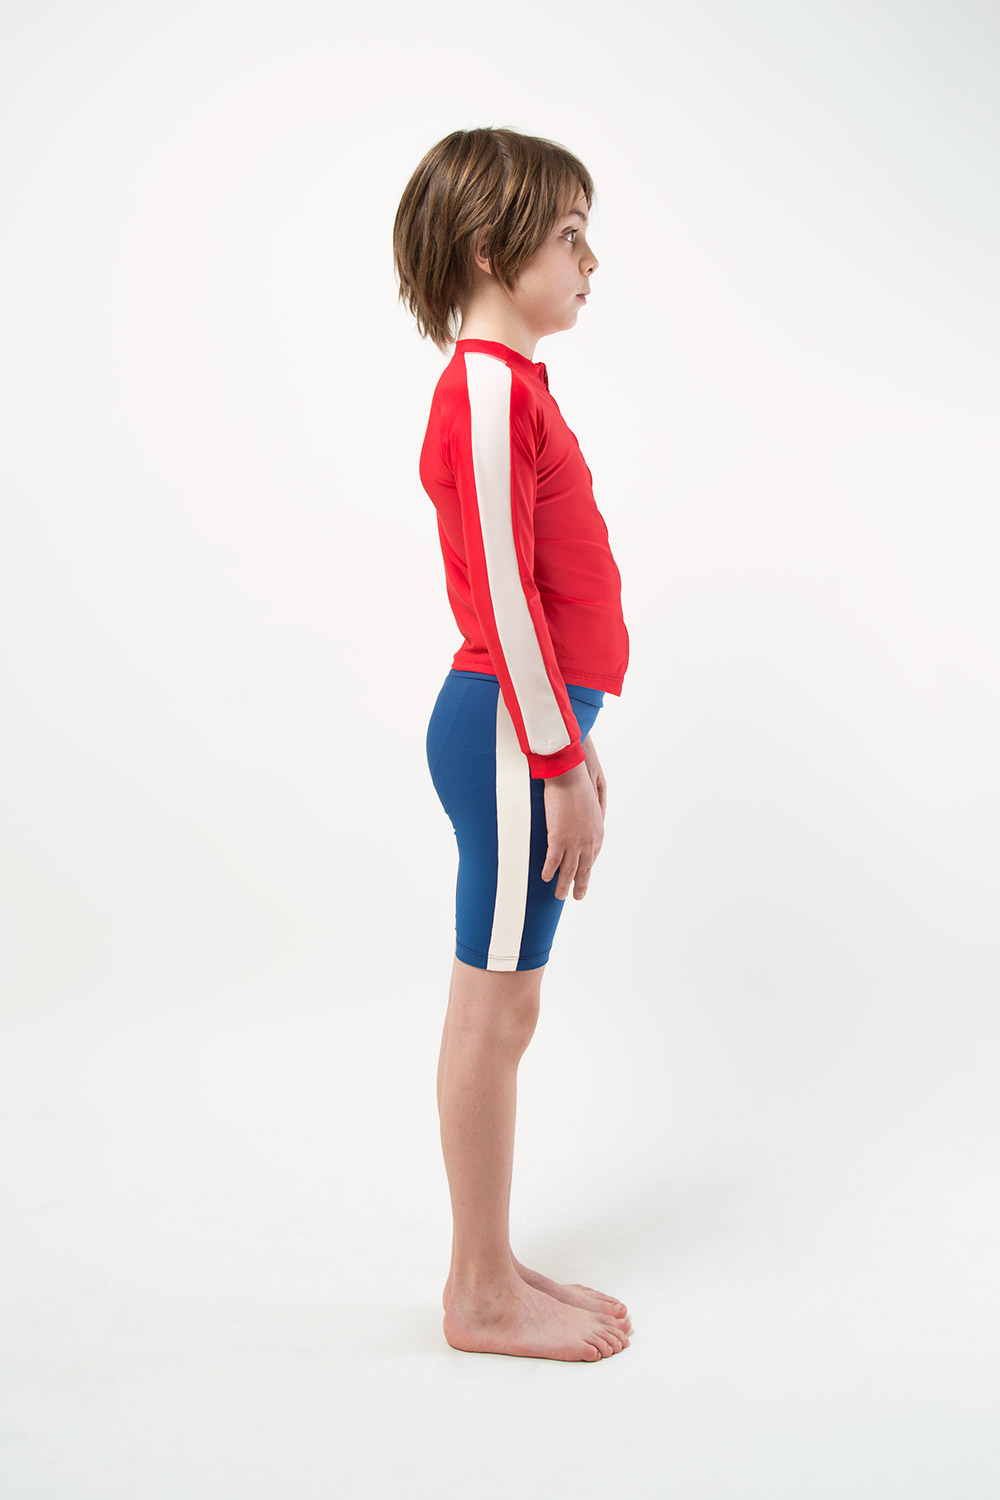 eco friendly blue jammer footprint collection side view boy